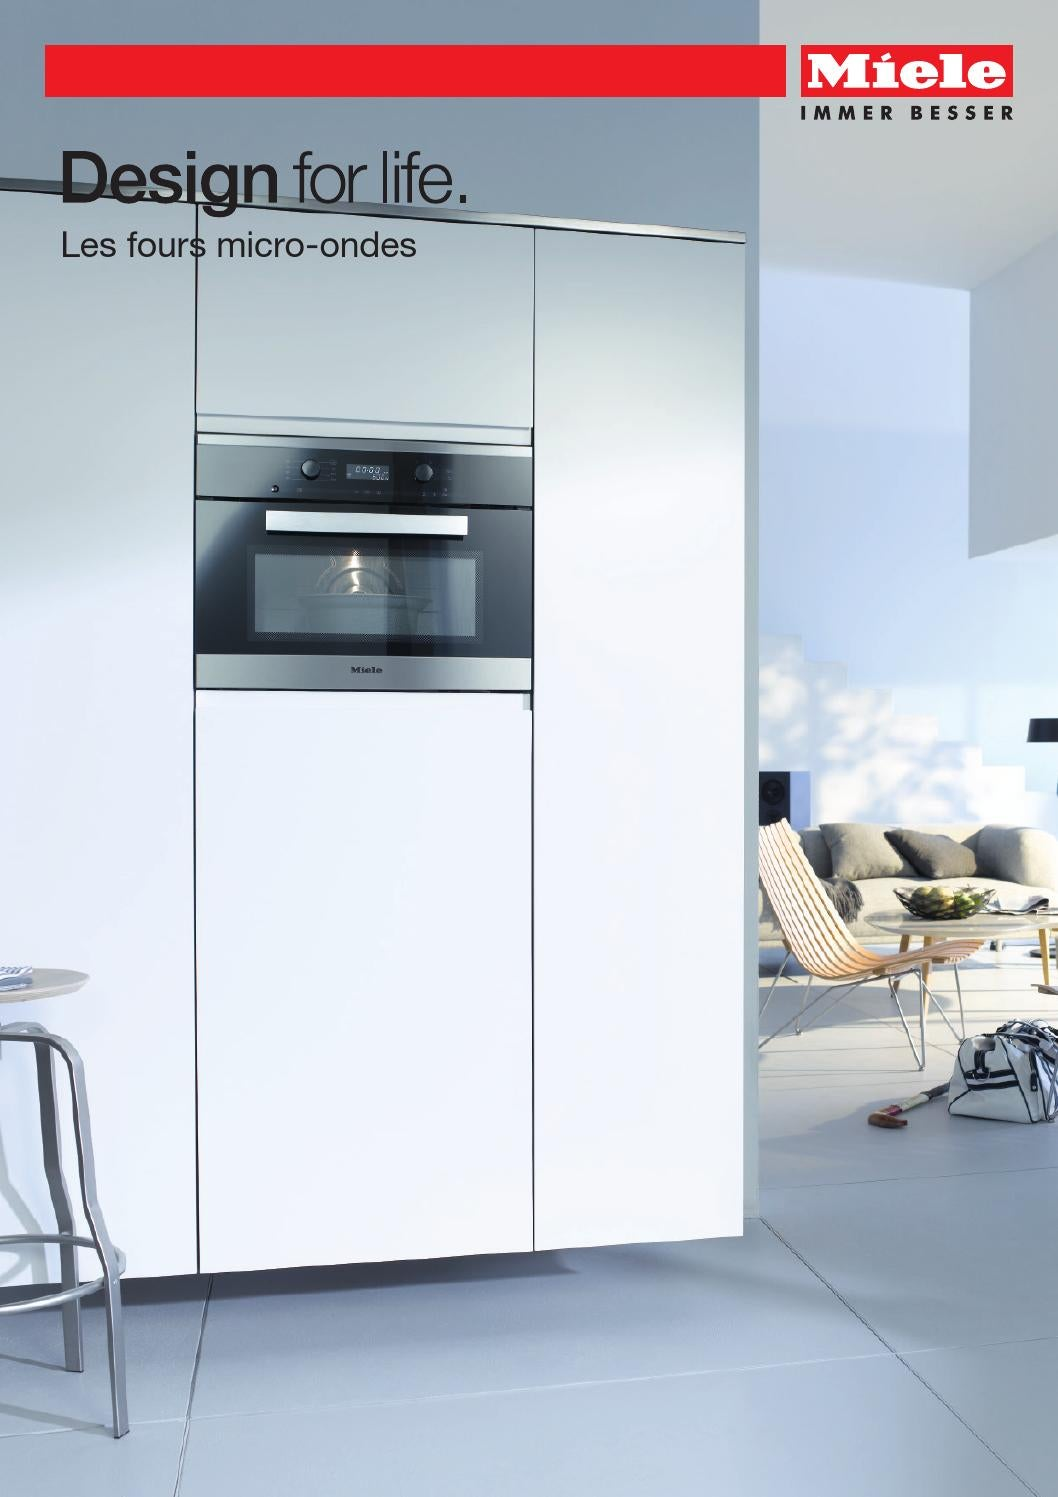 Miele catalogue les fours micro ondes fr by miele issuu - Four micro onde vapeur miele ...